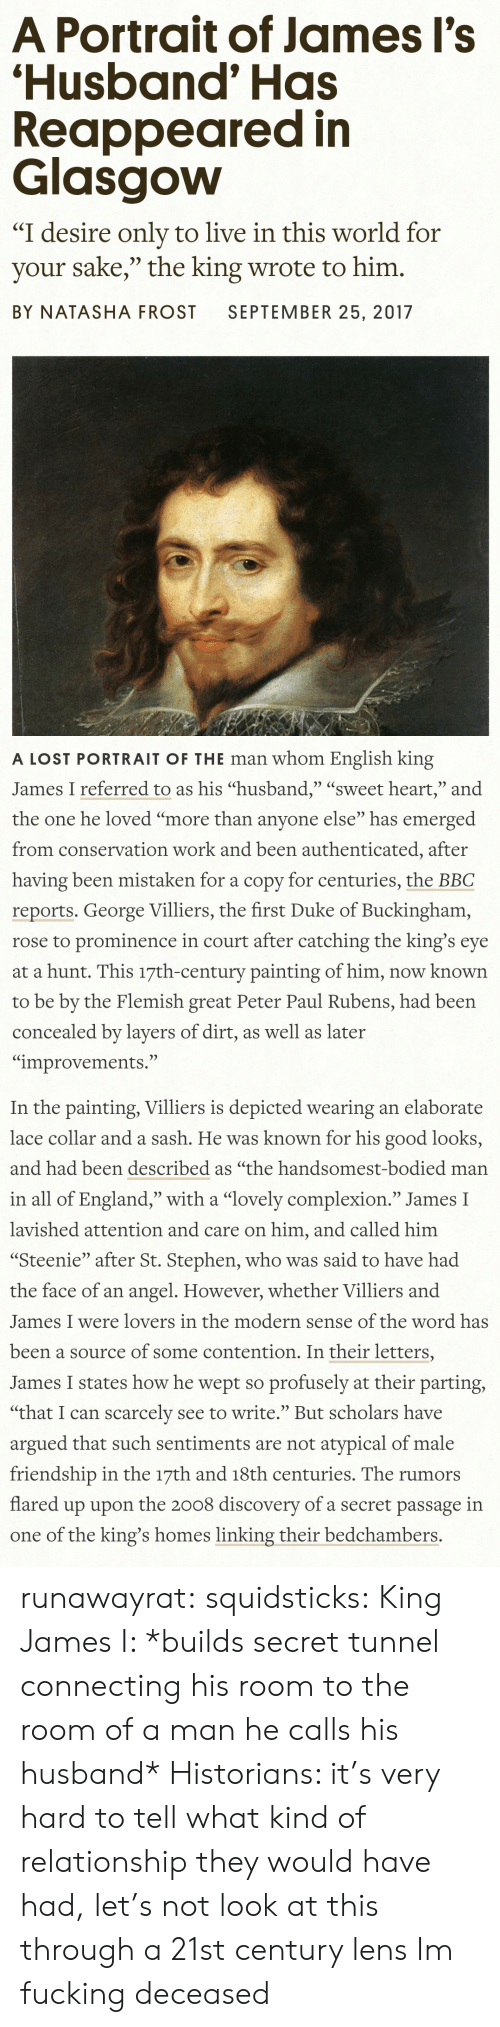 "England, Fucking, and Stephen: A Portrait of James Il's  'Husband' Has  Reappeared in  Glasgovw  ""I desire only to live in this world for  your sake,"" the king wrote to him.  BY NATASHA FROST SEPTEMBER 25, 2017   A LOST PORTRAIT OF THE man whom English king  James I referred to as his ""husband,"" ""sweet heart,"" and  the one he loved ""more than anvone else"" has emerged  from conservation work and been authenticated, after  having been mistaken for a copy for centuries, the BBC  reports. George Villiers, the first Duke of Buckingham,  rose to prominence in court after catching the king's eye  at a hunt. This 17th-century painting of him, now known  to be by the Flemish great Peter Paul Rubens, had been  concealed by layers of dirt, as well as later  ""improvements.""   In the painting, Villiers is depicted wearing an elaborate  lace collar and a sash. He was known for his good looks,  and had been described as ""the handsomest-bodied man  in all of England,"" with a ""lovely complexion."" James I  lavished attention and care on him, and called him  ""Steenie"" after St. Stephen, who was said to have had  the face of an angel. However, whether Villiers and  James I were lovers in the modern sense of the word has  been a source of some contention. In their letters,  James I states how he wept so profusely at their parting  ""that I can scarcelv see to write. But scholars have  argued that such sentiments are not atypical of male  friendship in the 17th and 18th centuries. The rumors  flared up upon the 2008 discoverv of a secret passage in  one of the king's homes linking their bedchambers. runawayrat:  squidsticks:  King James I: *builds secret tunnel connecting his room to the room of a man he calls his husband*  Historians: it's very hard to tell what kind of relationship they would have had, let's not look at this through a 21st century lens   Im fucking deceased"